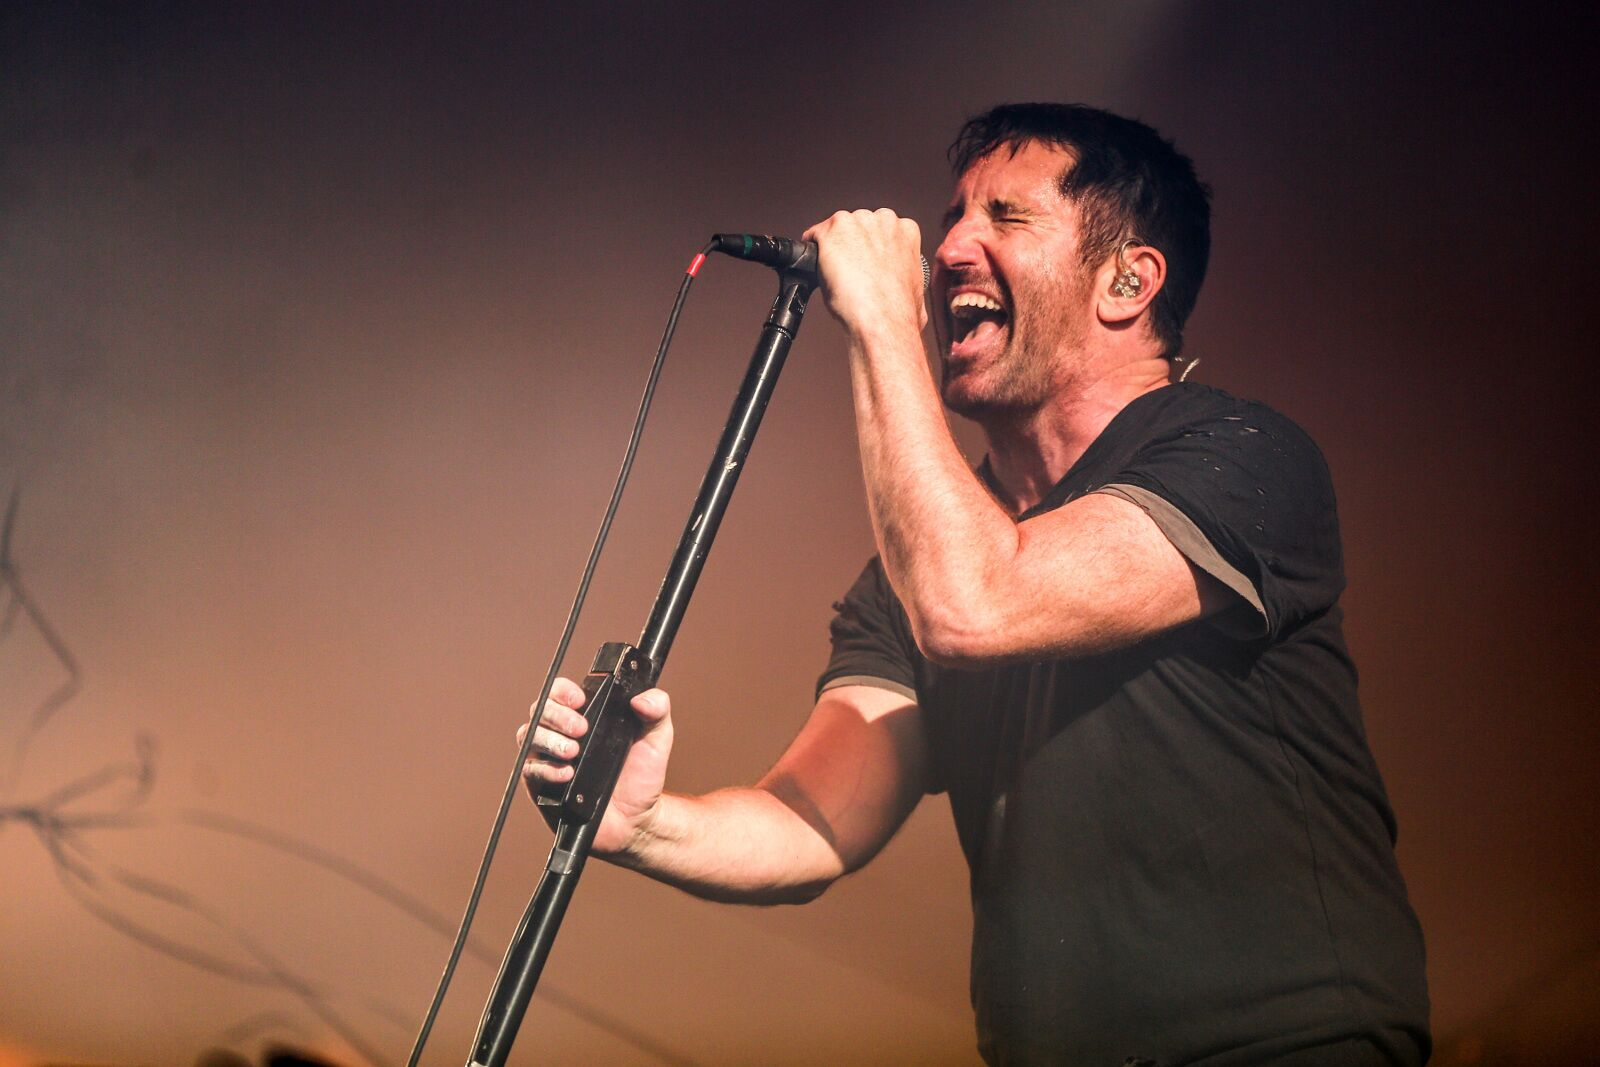 Los Angeles Ca July 23 Trent Reznor Of Nine Inch Nails Performs Onstage